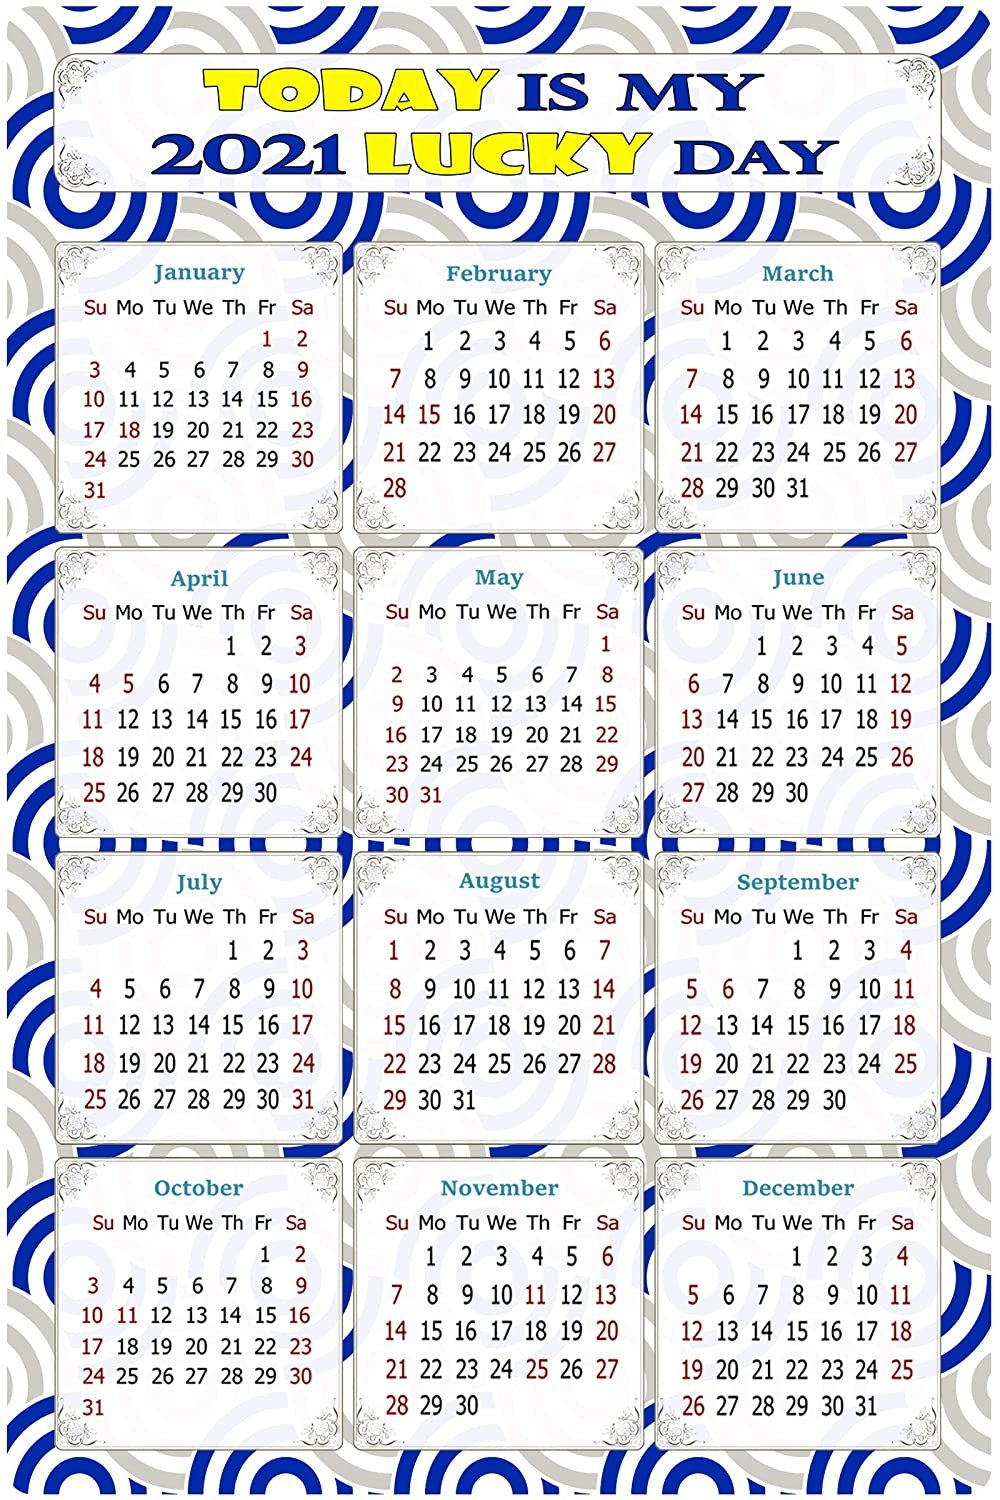 2021 Magnetic Calendar - Calendar Magnets - Today is My Lucky Day - Themed 08 (7 x 10.5)